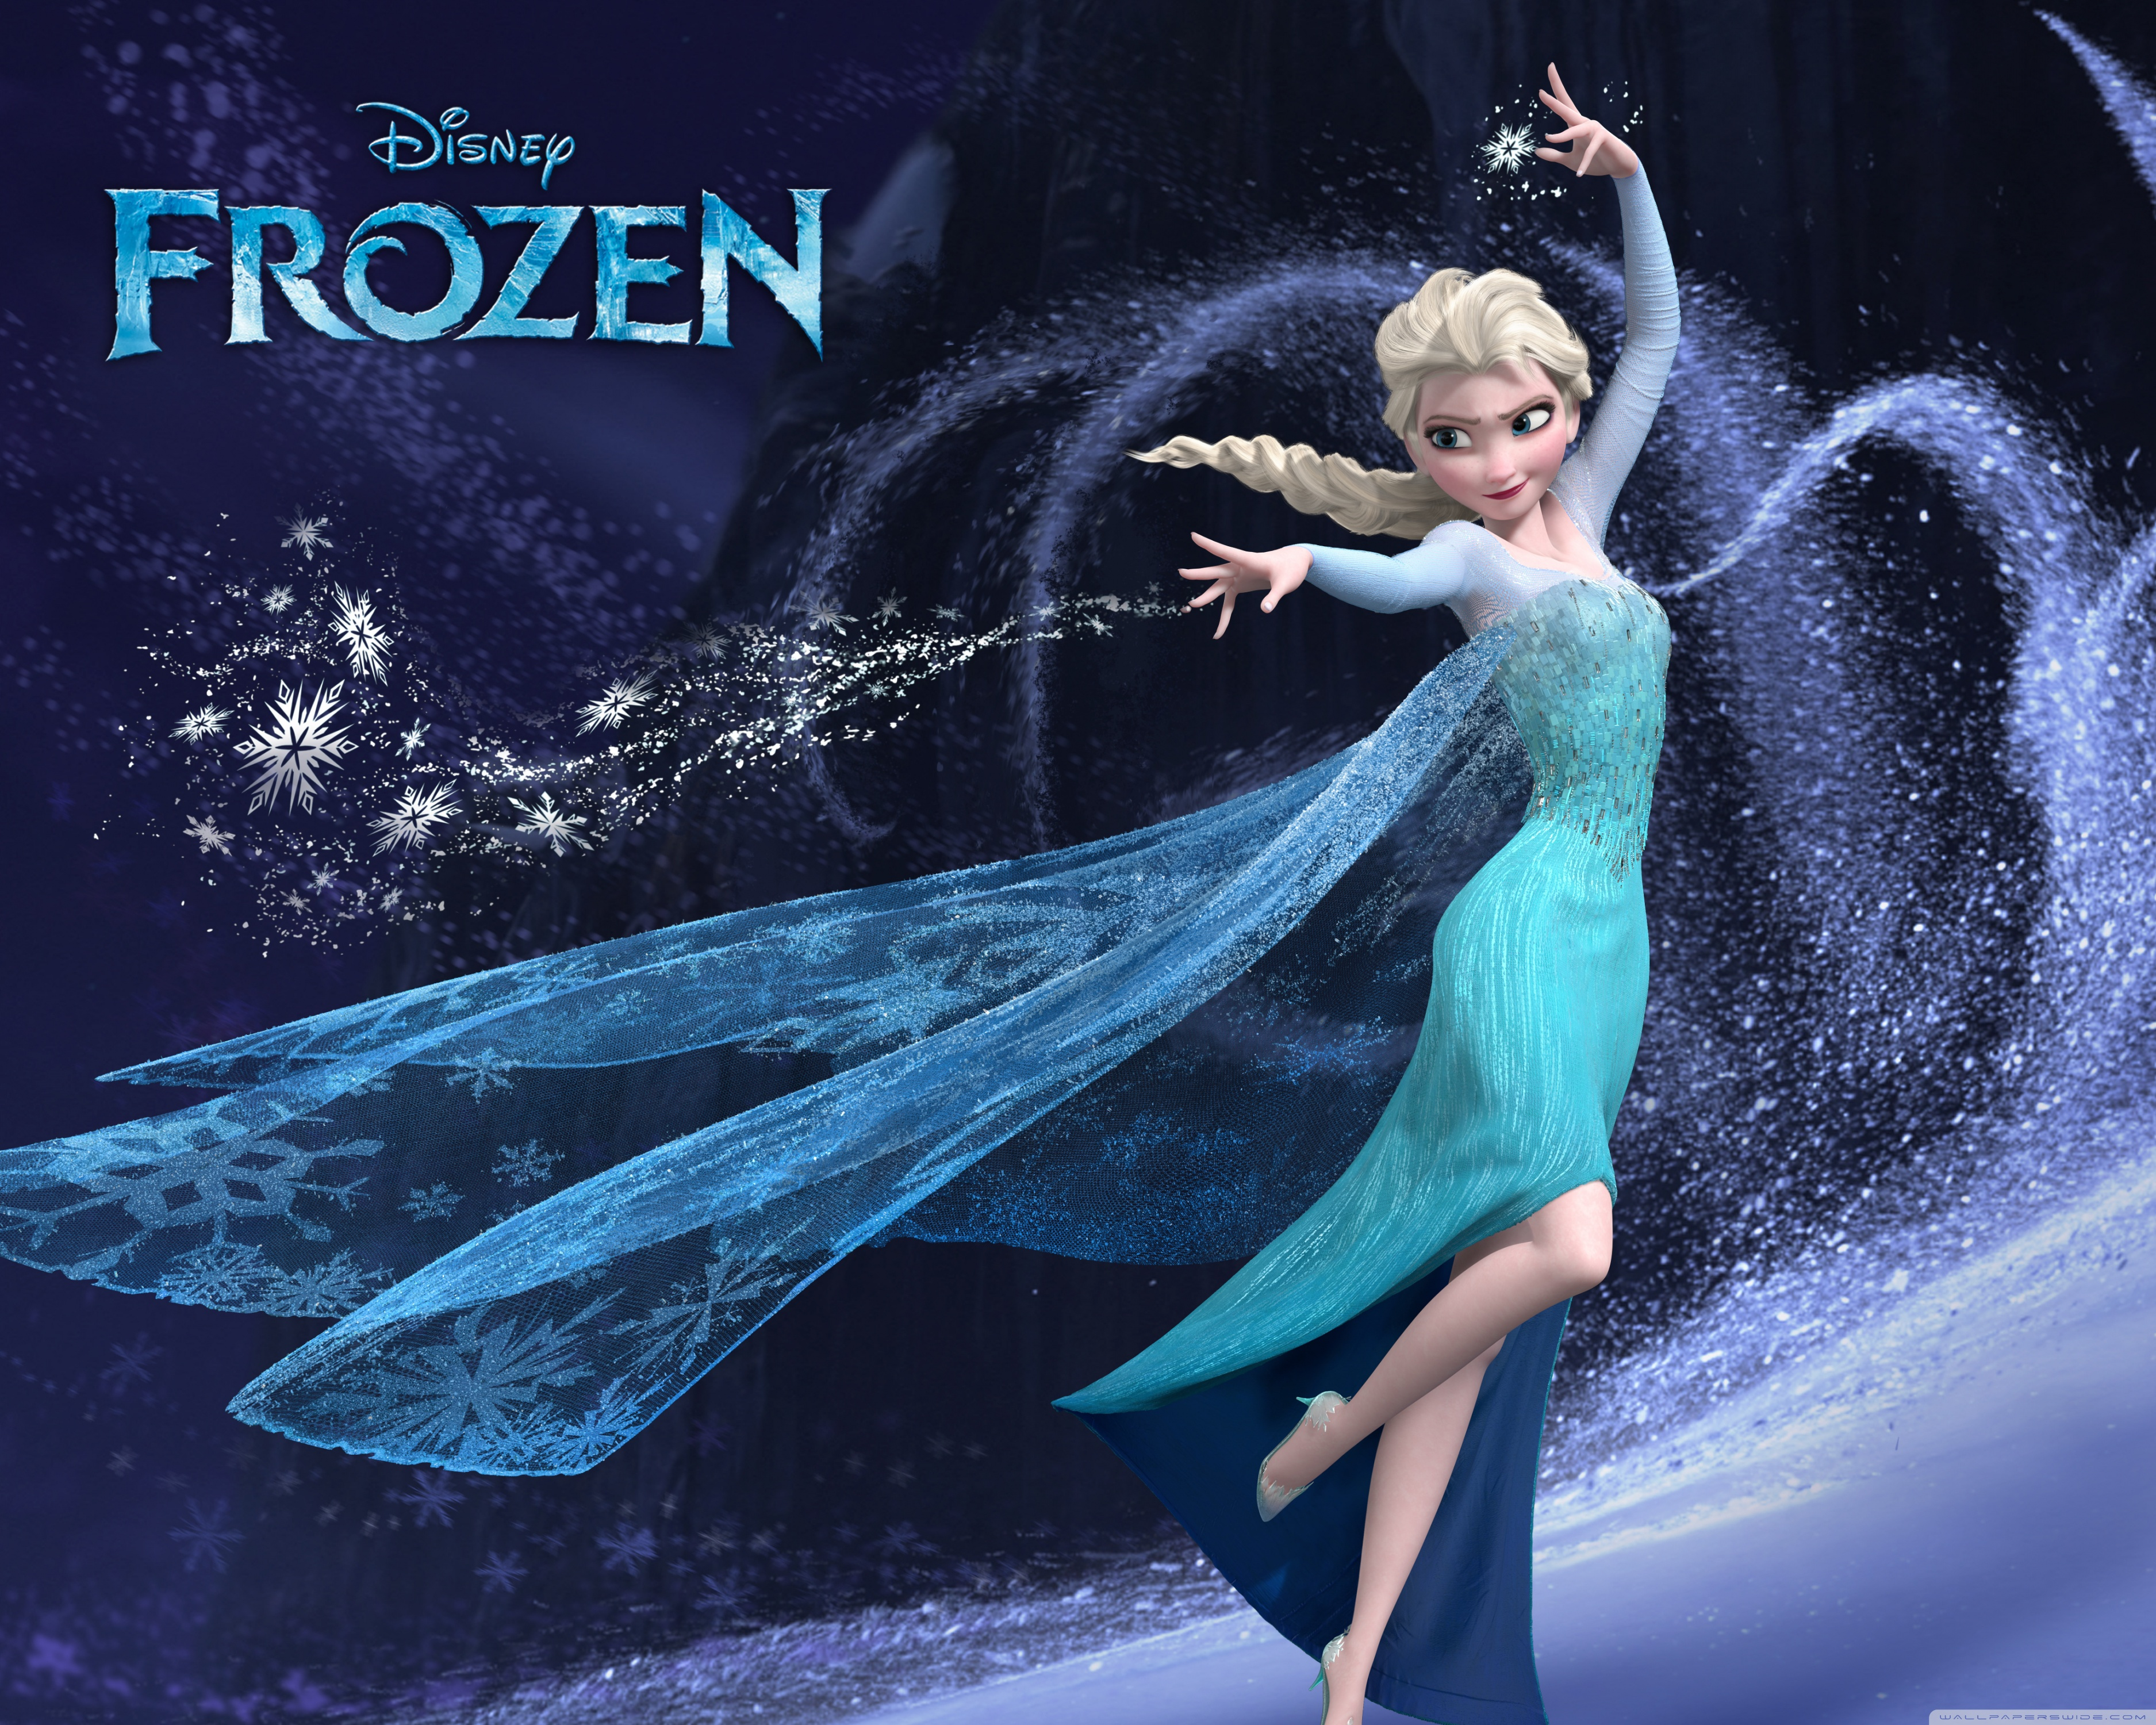 frozen_elsa-wallpaper-3750x3000.jpg